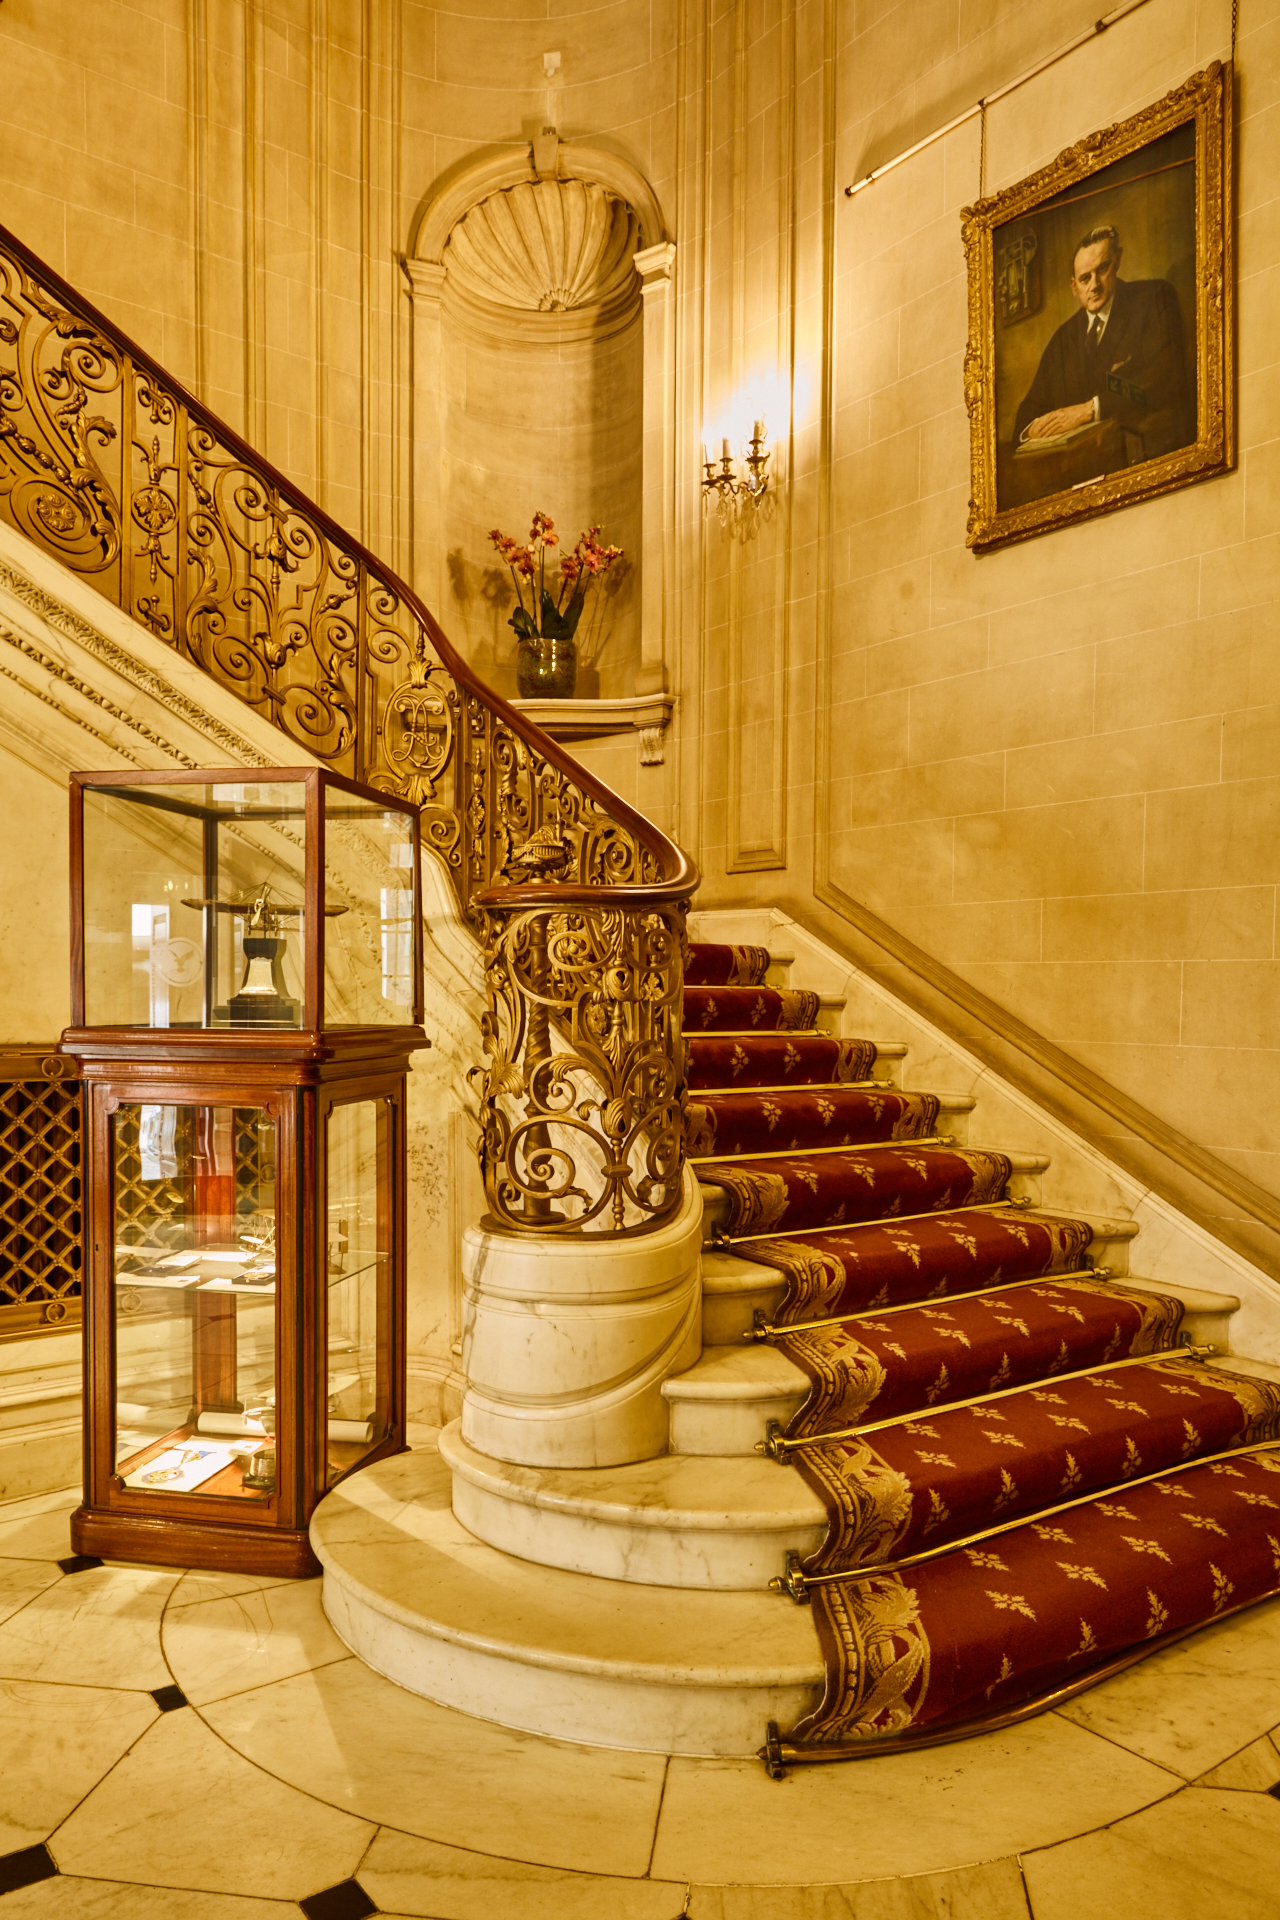 Royal Aeronautical Society stairway